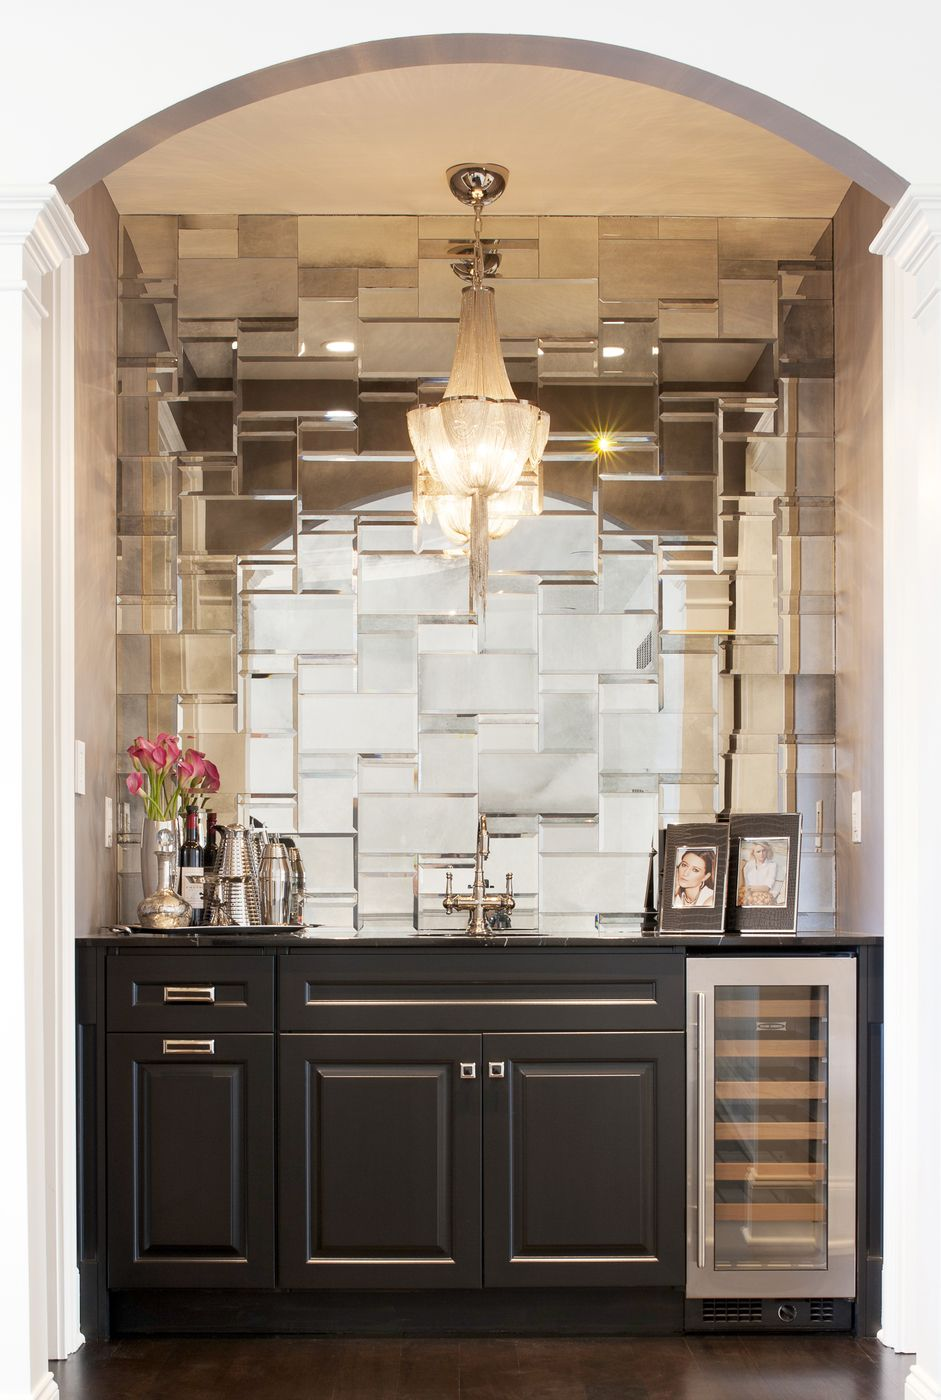 Explore wall ideas and be inspired with mirrored tile backsplash explore wall ideas and be inspired with mirrored tile backsplash groutless tile backsplash mirrored dailygadgetfo Gallery